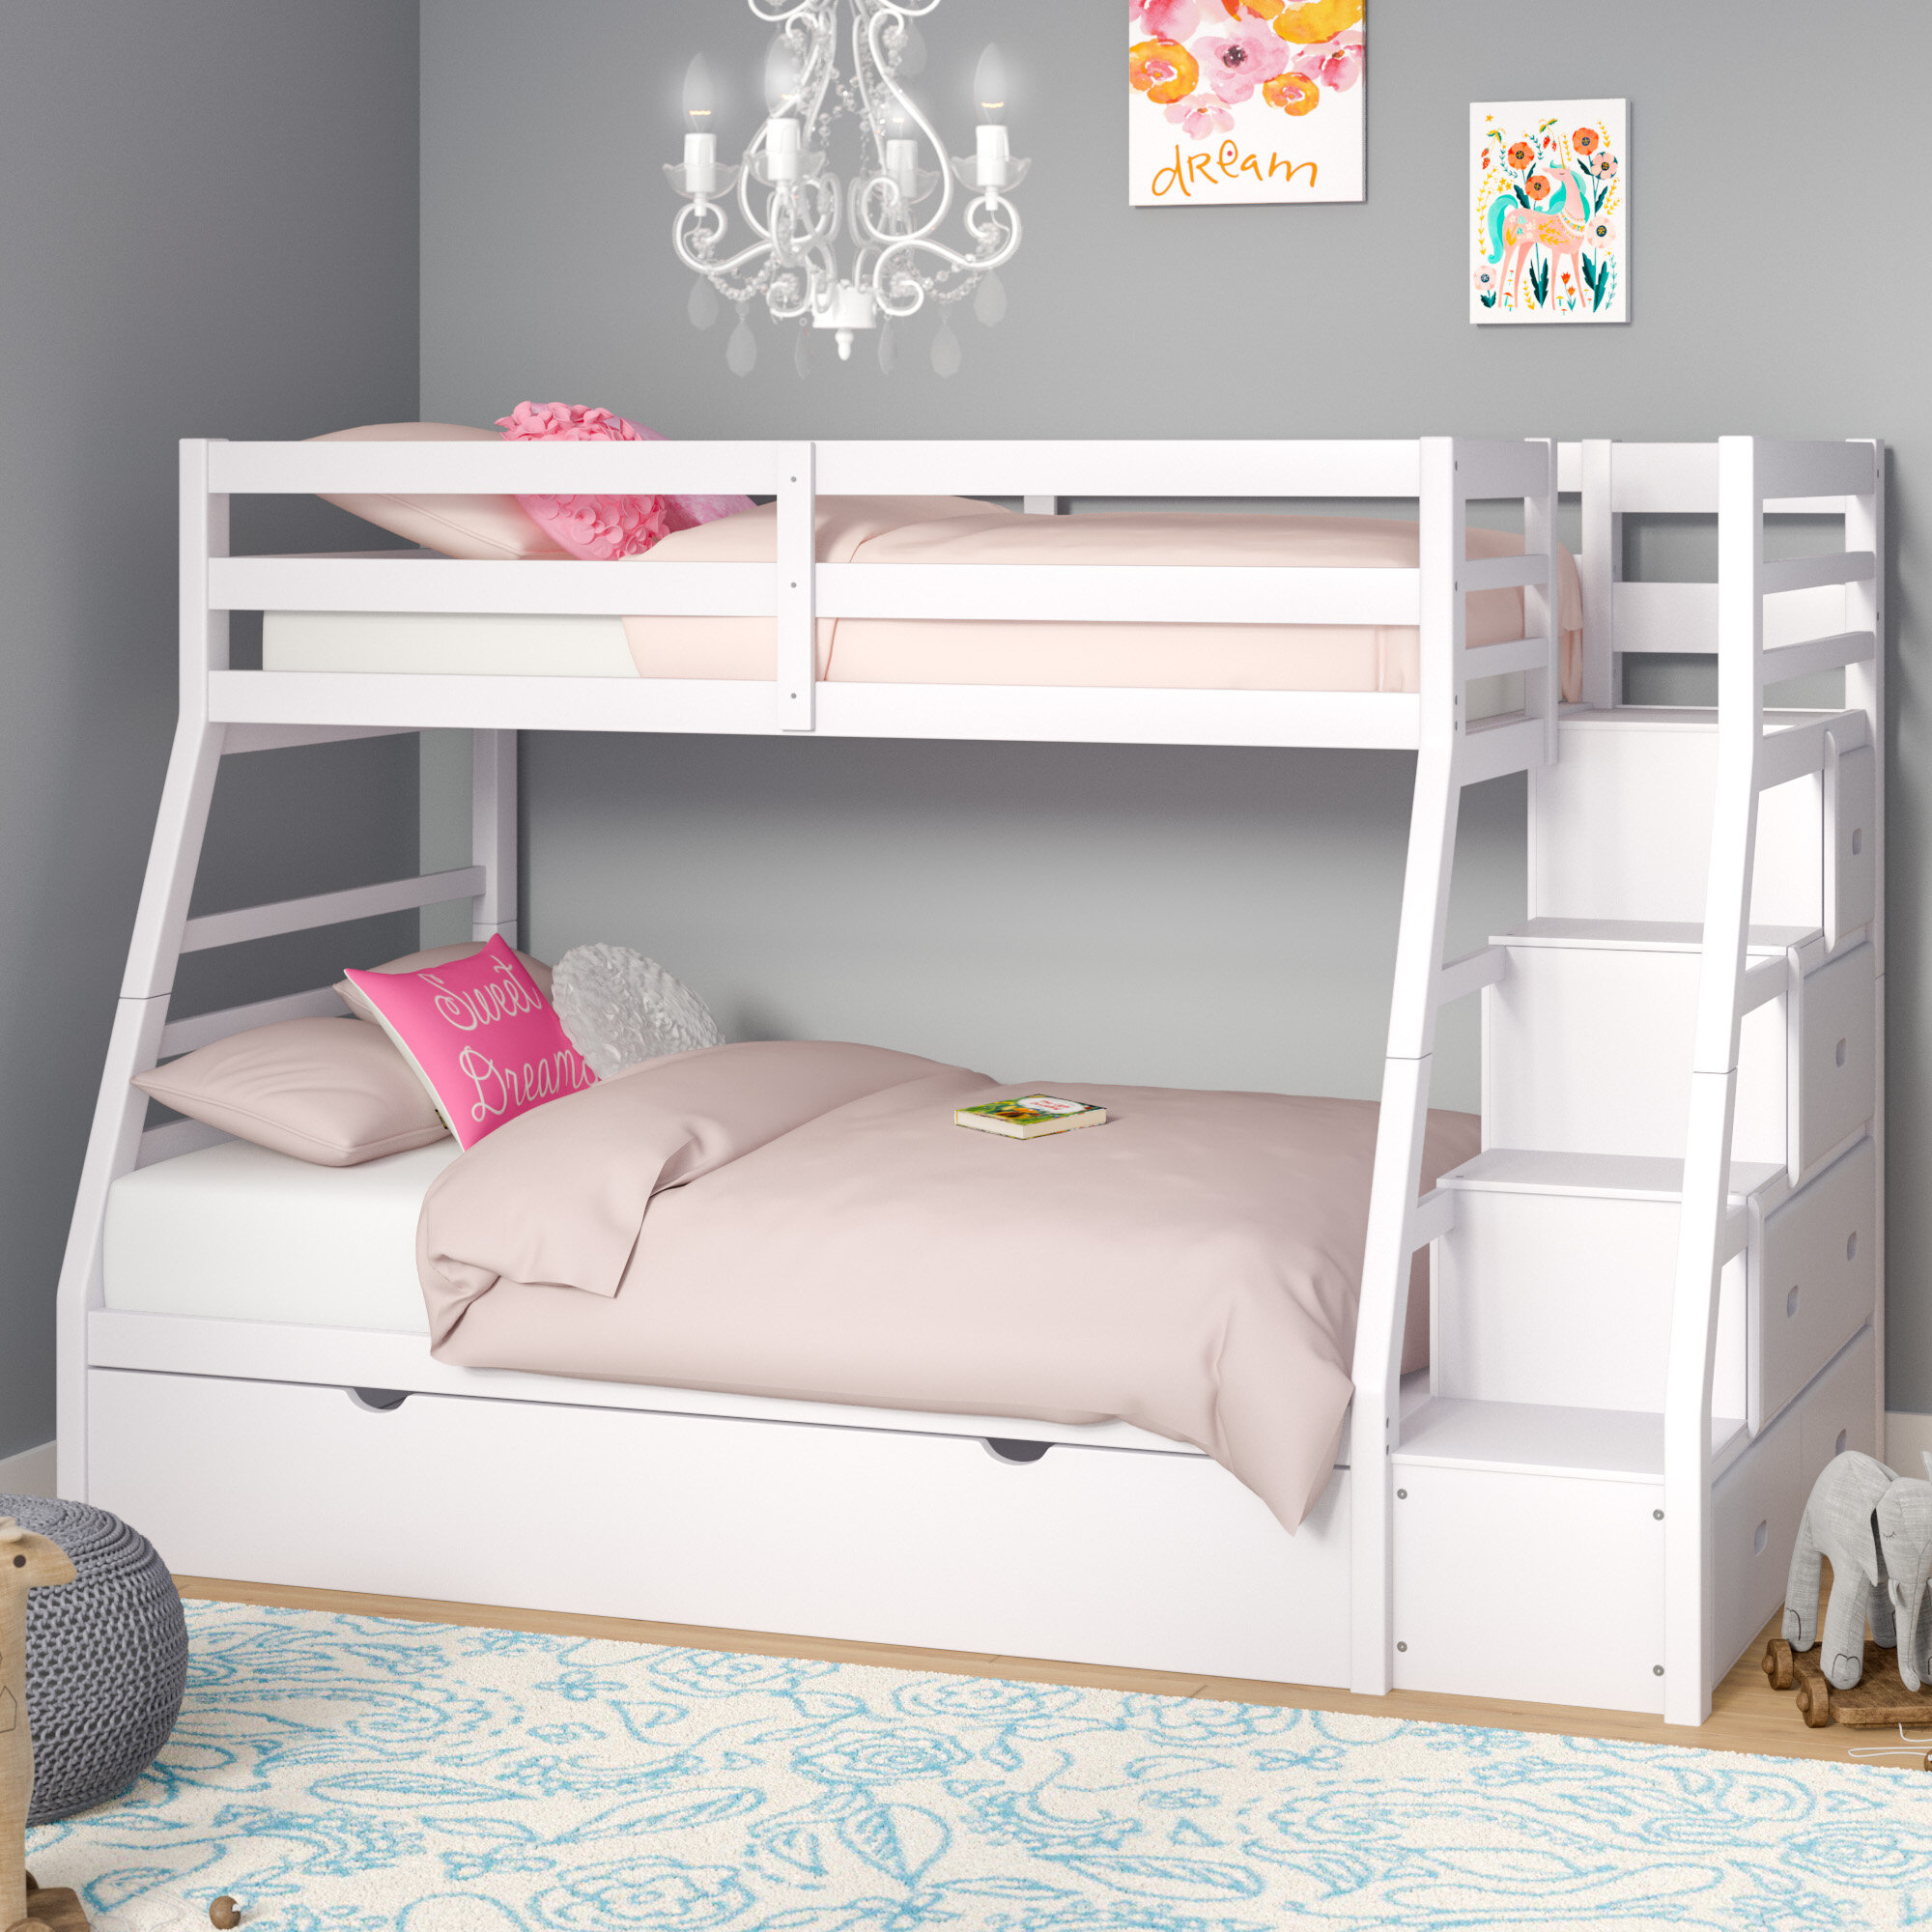 delightful girl pictures living small bunk with beds ceiling stair stairs loft room door kids ideas for rooms diy bedroom wonderful home design latest low dorm painting